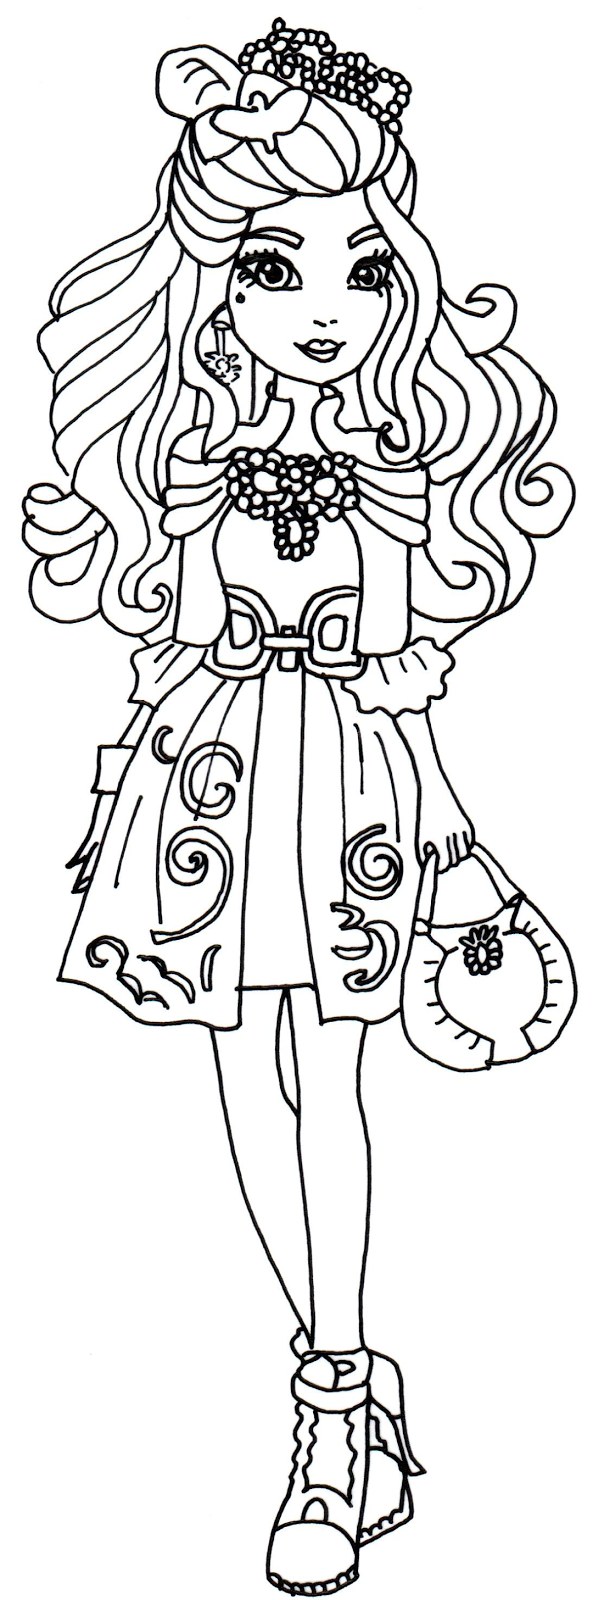 Darling Charming Ever After High para colorear